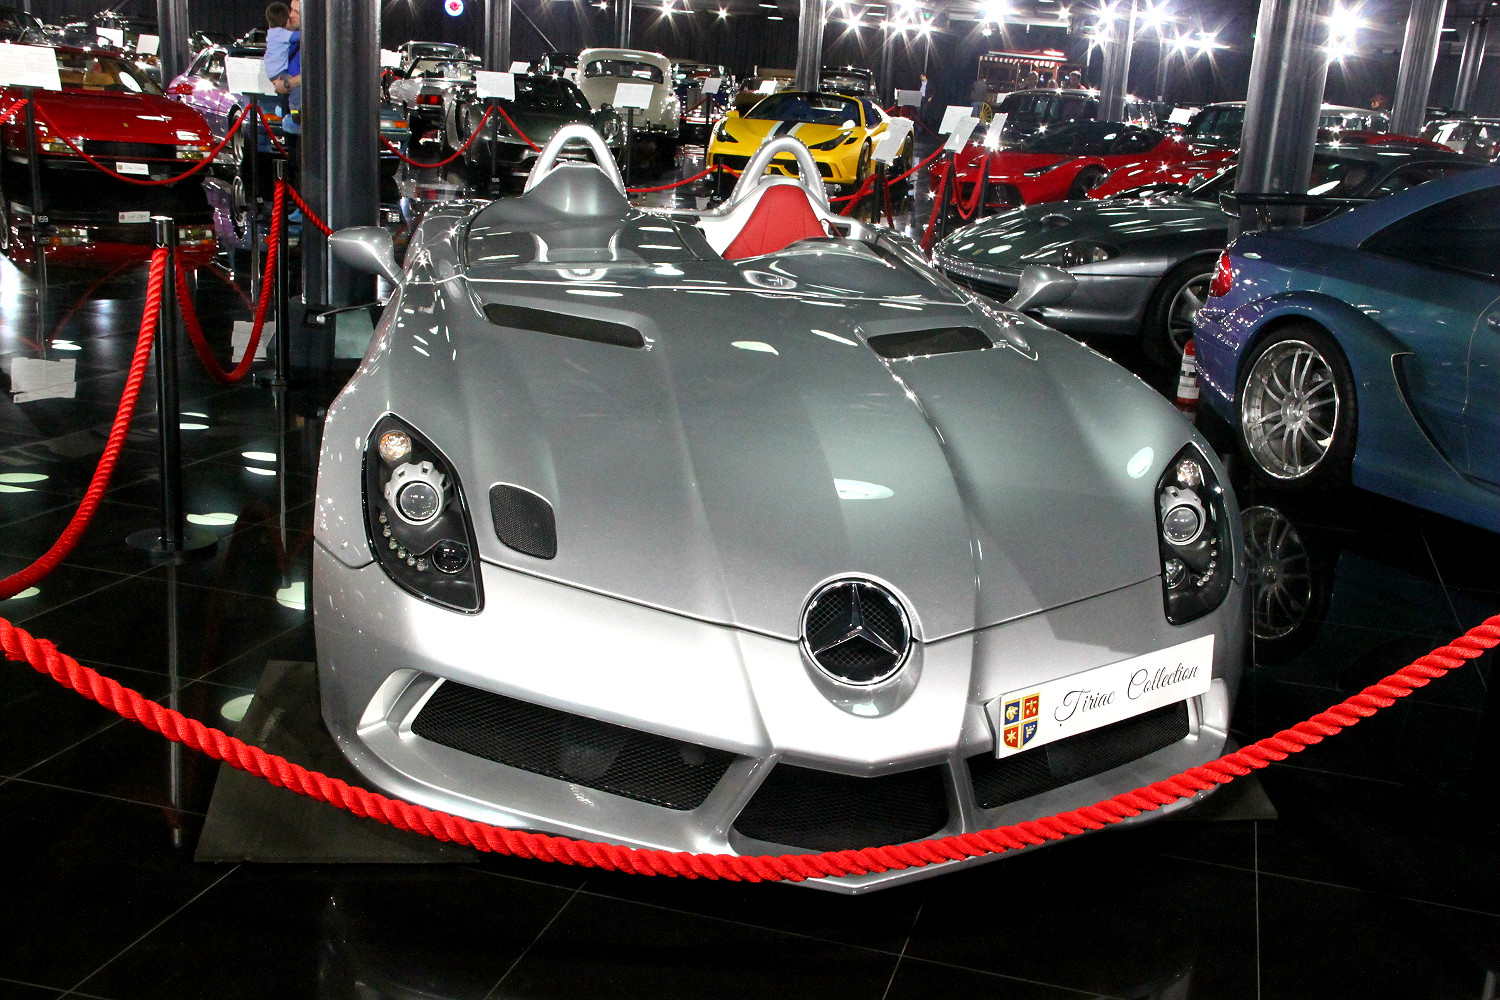 Mercedes Benz SLR 2009 - Tiriac Collection